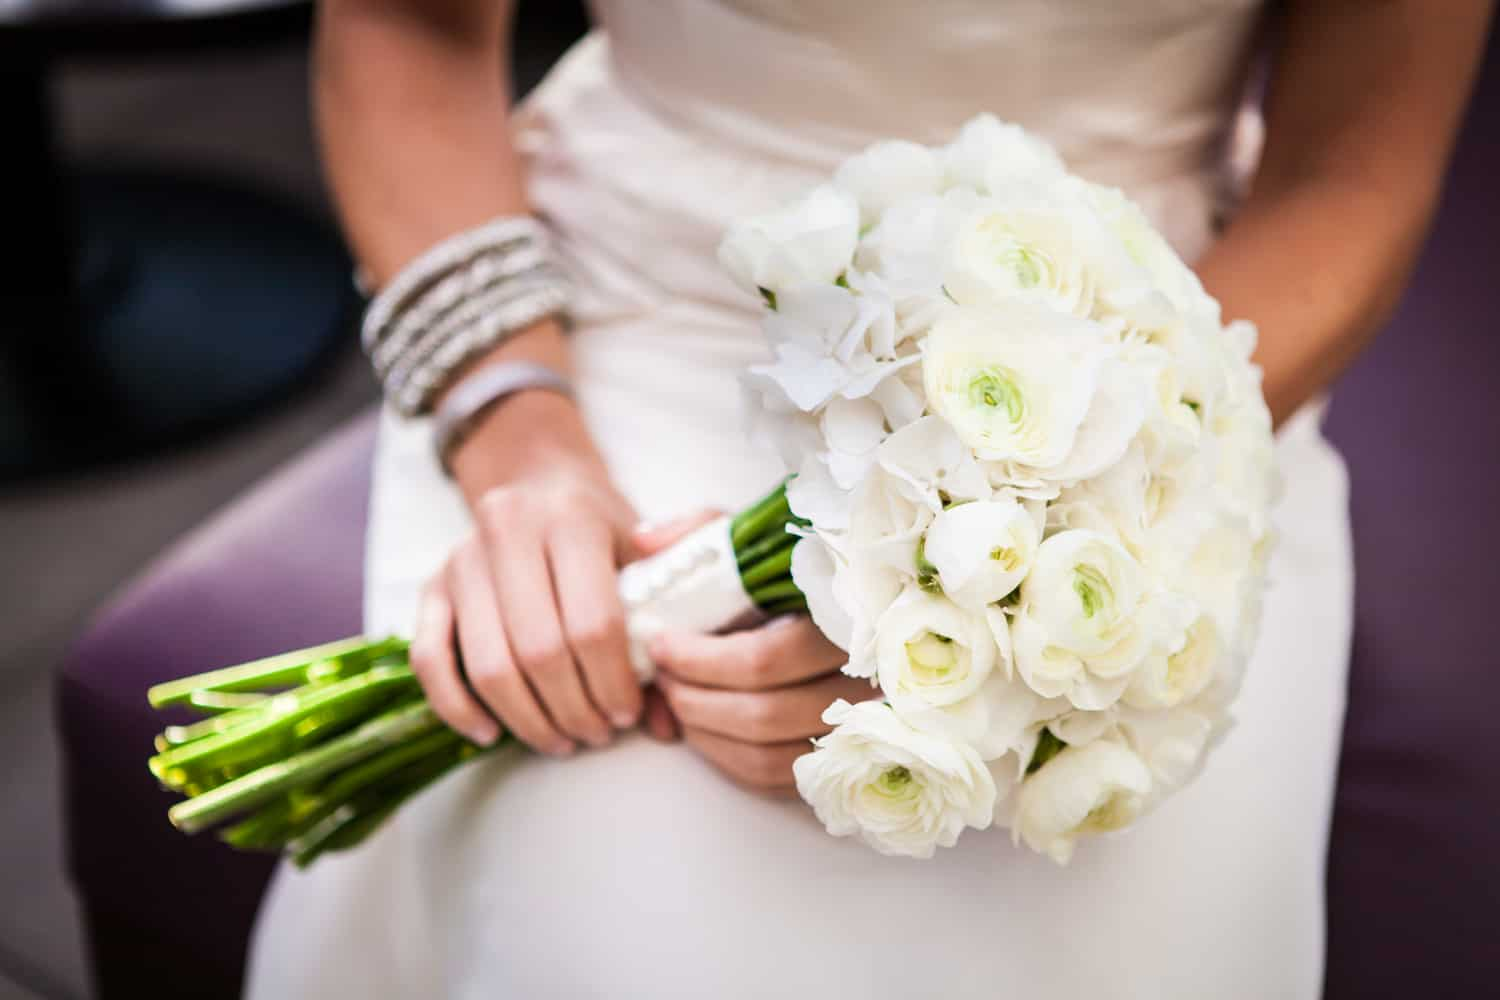 Close up of bride's hands holding flower bouquet